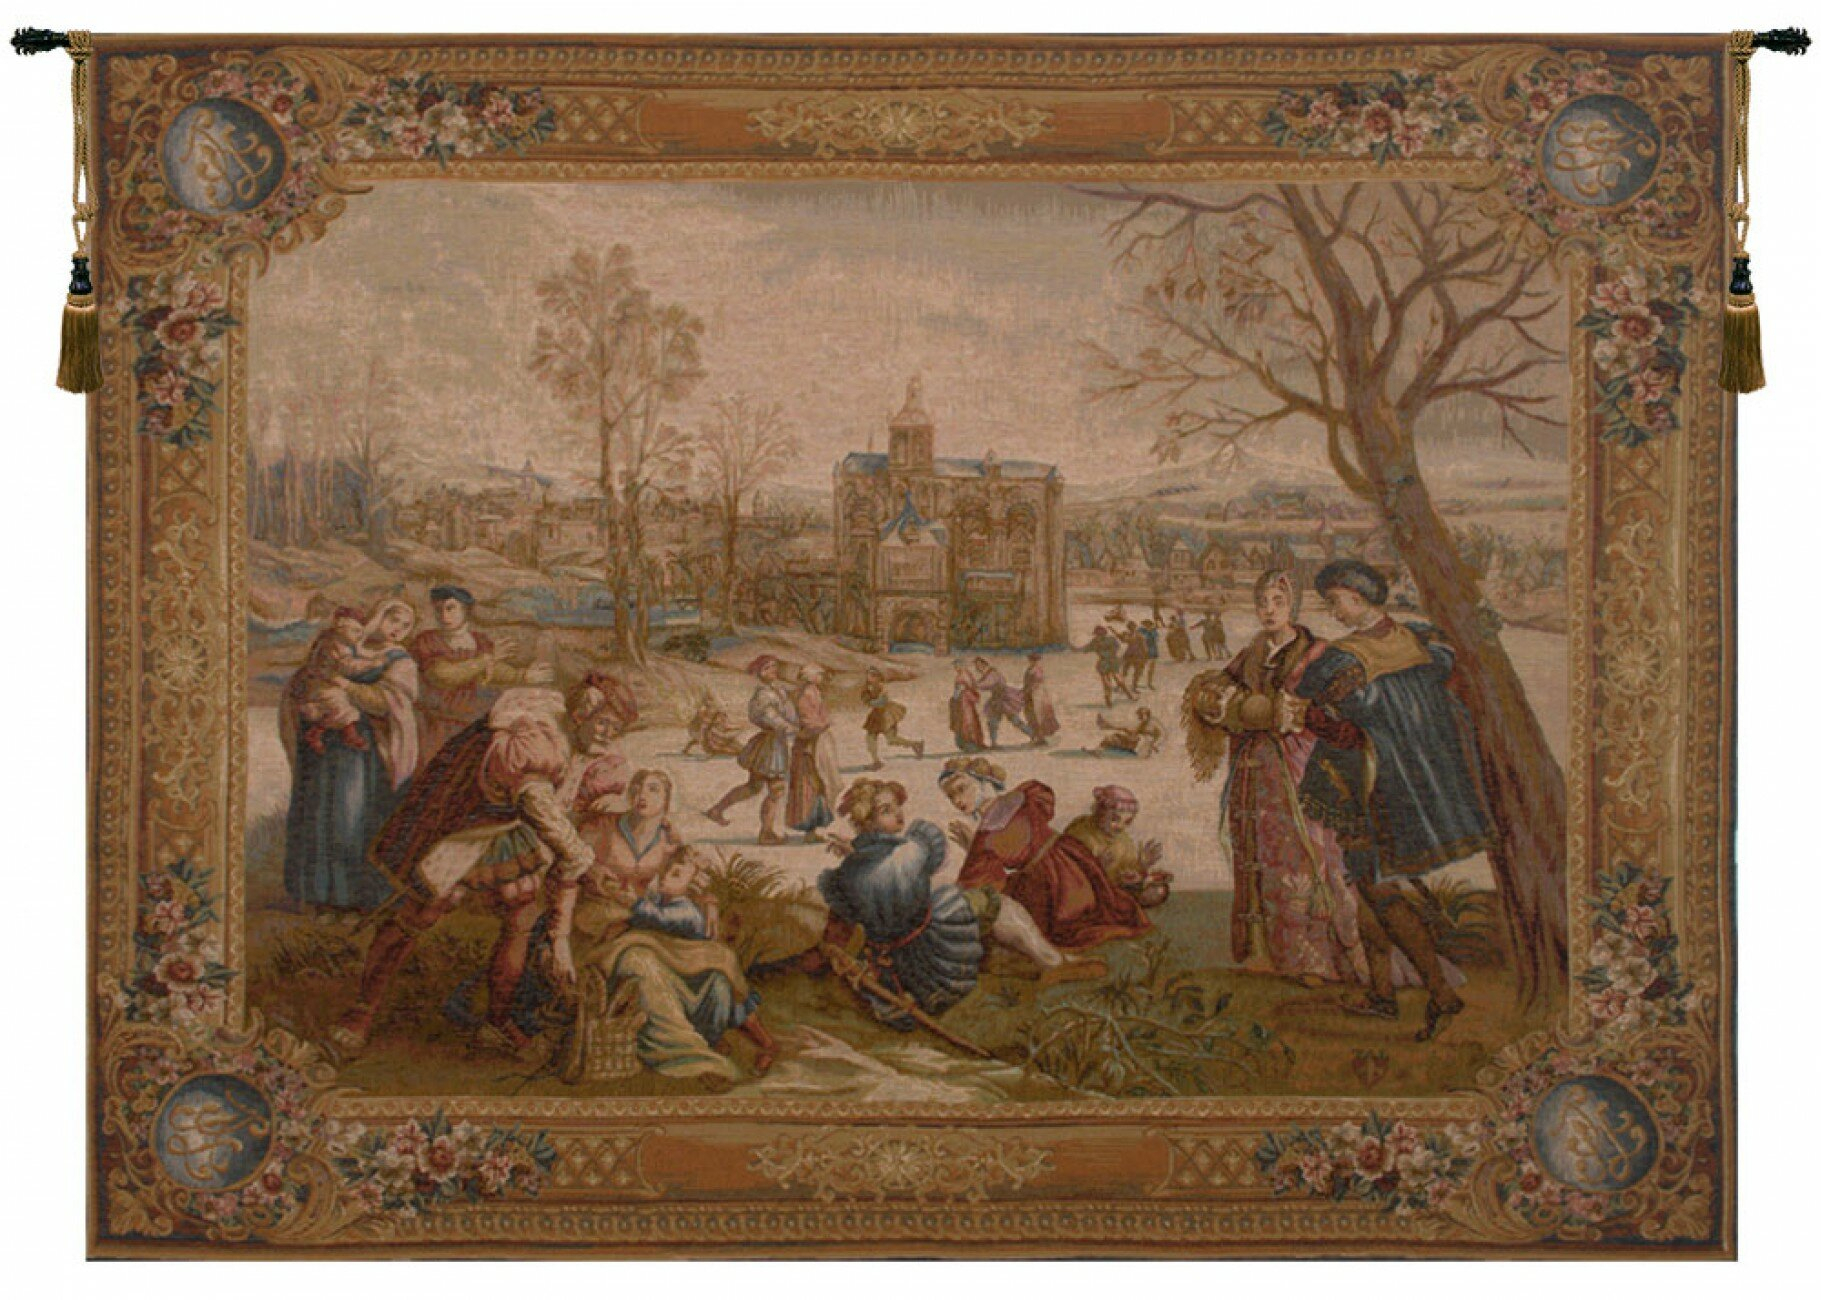 Les Patineurs I European Tapestry For Most Up To Date Grandes Armoiries I European Tapestries (View 6 of 20)